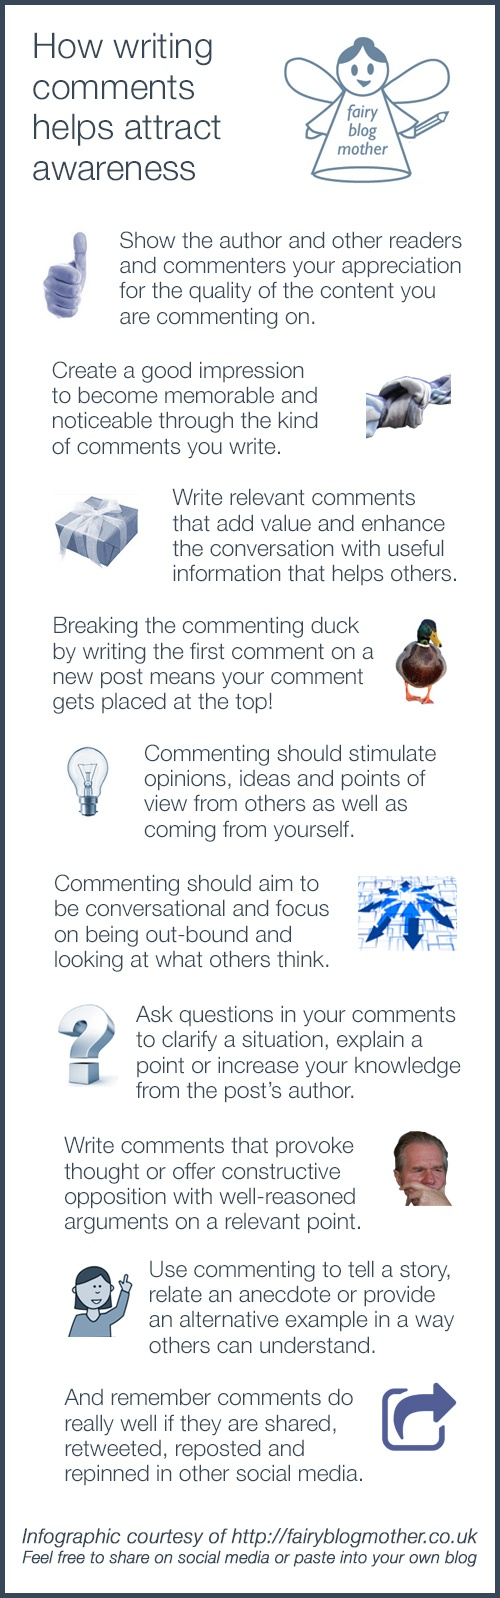 How writing comments helps attract awareness